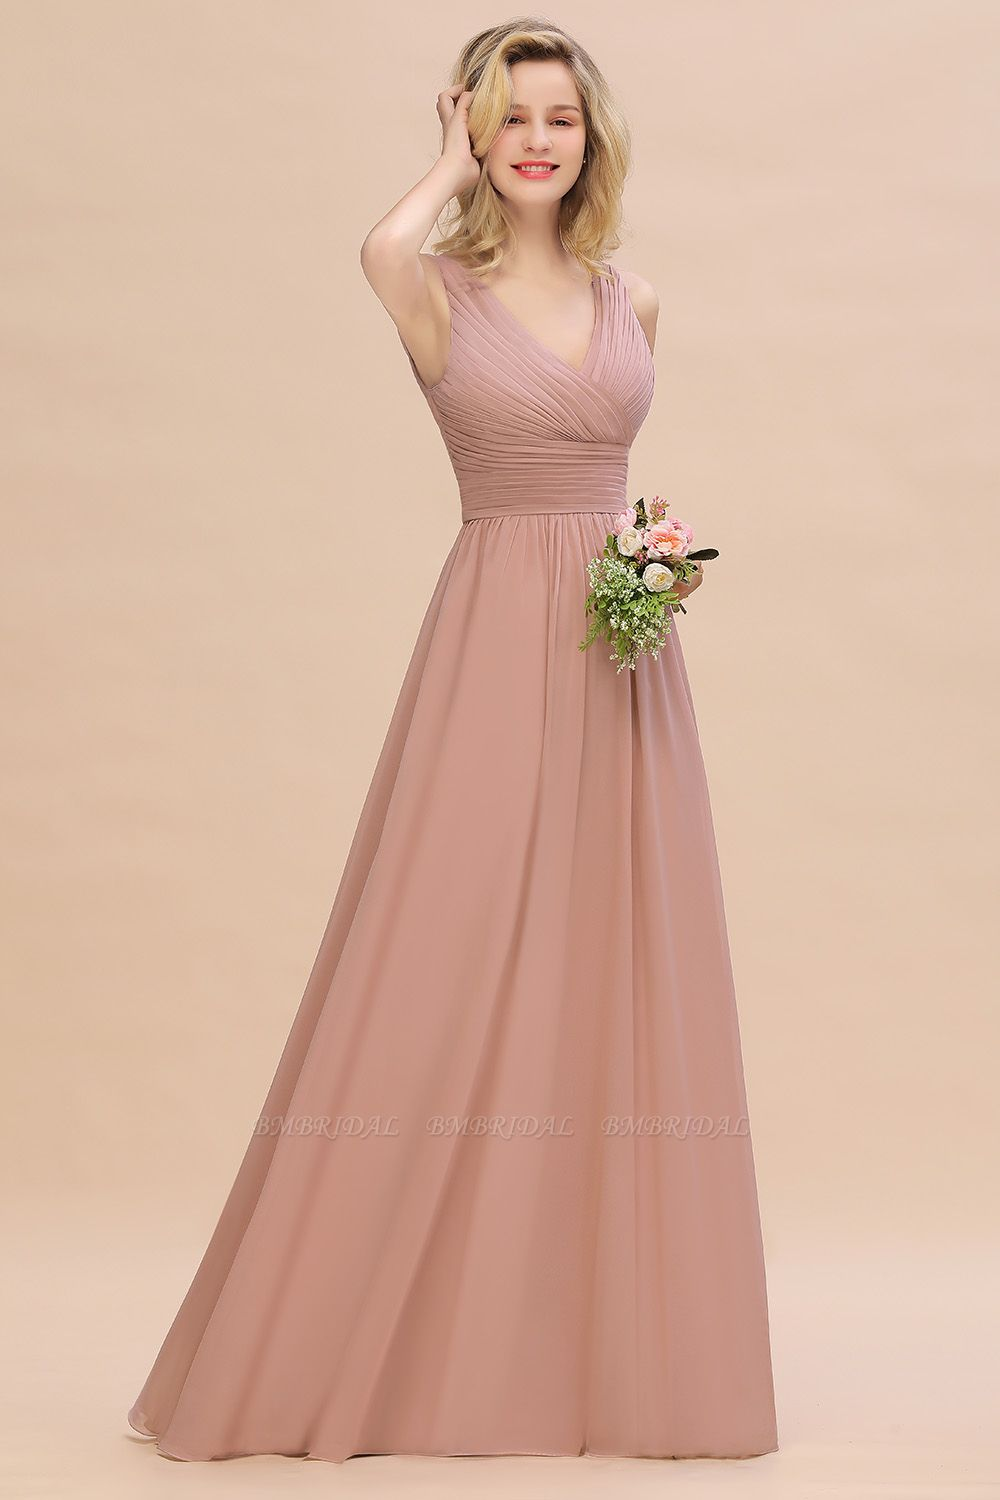 BMbridal Bridesmaid Dress EXPO: Where To Save Money And Time For The Weddings